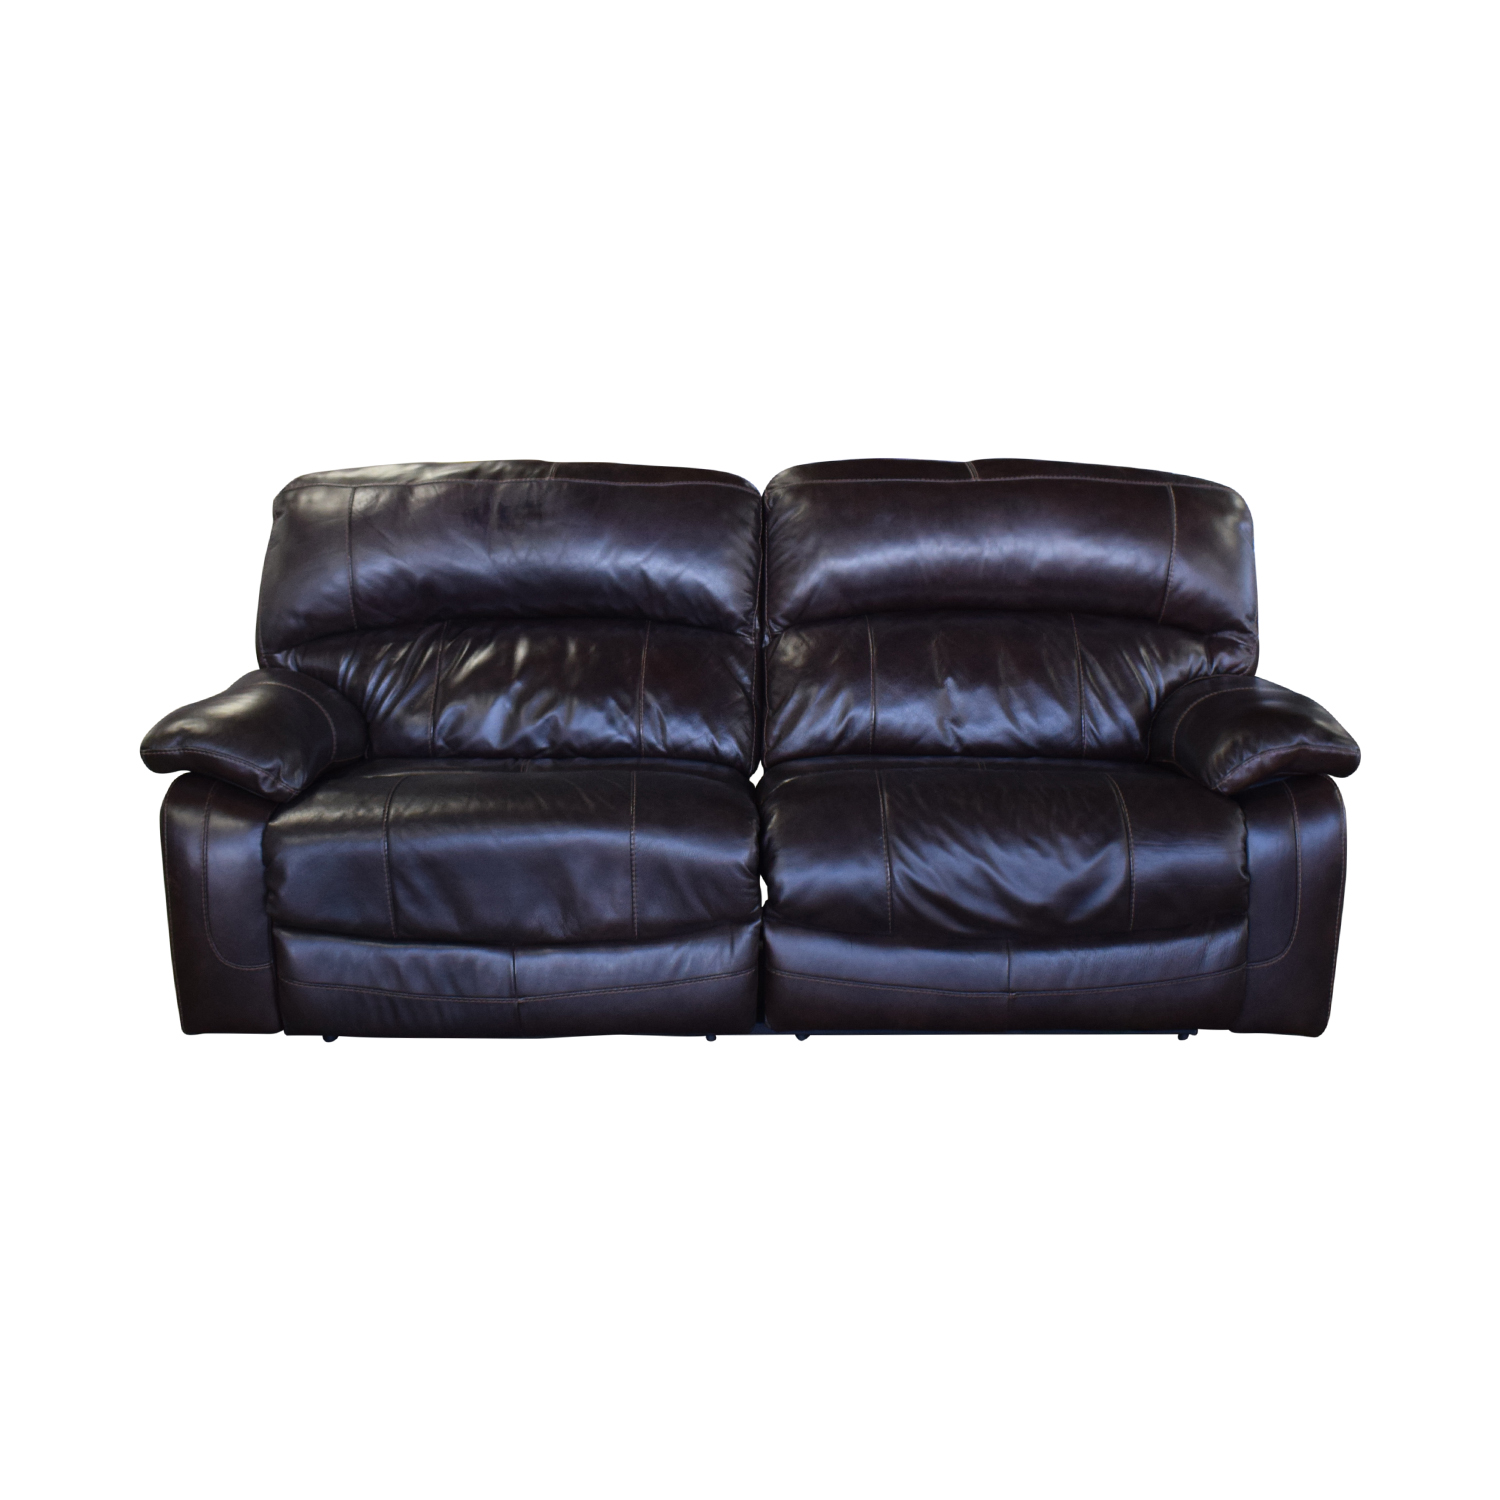 Sofa With Recliner 82 Off Ashley Furniture Ashley Furniture Sofa Recliner Sofas